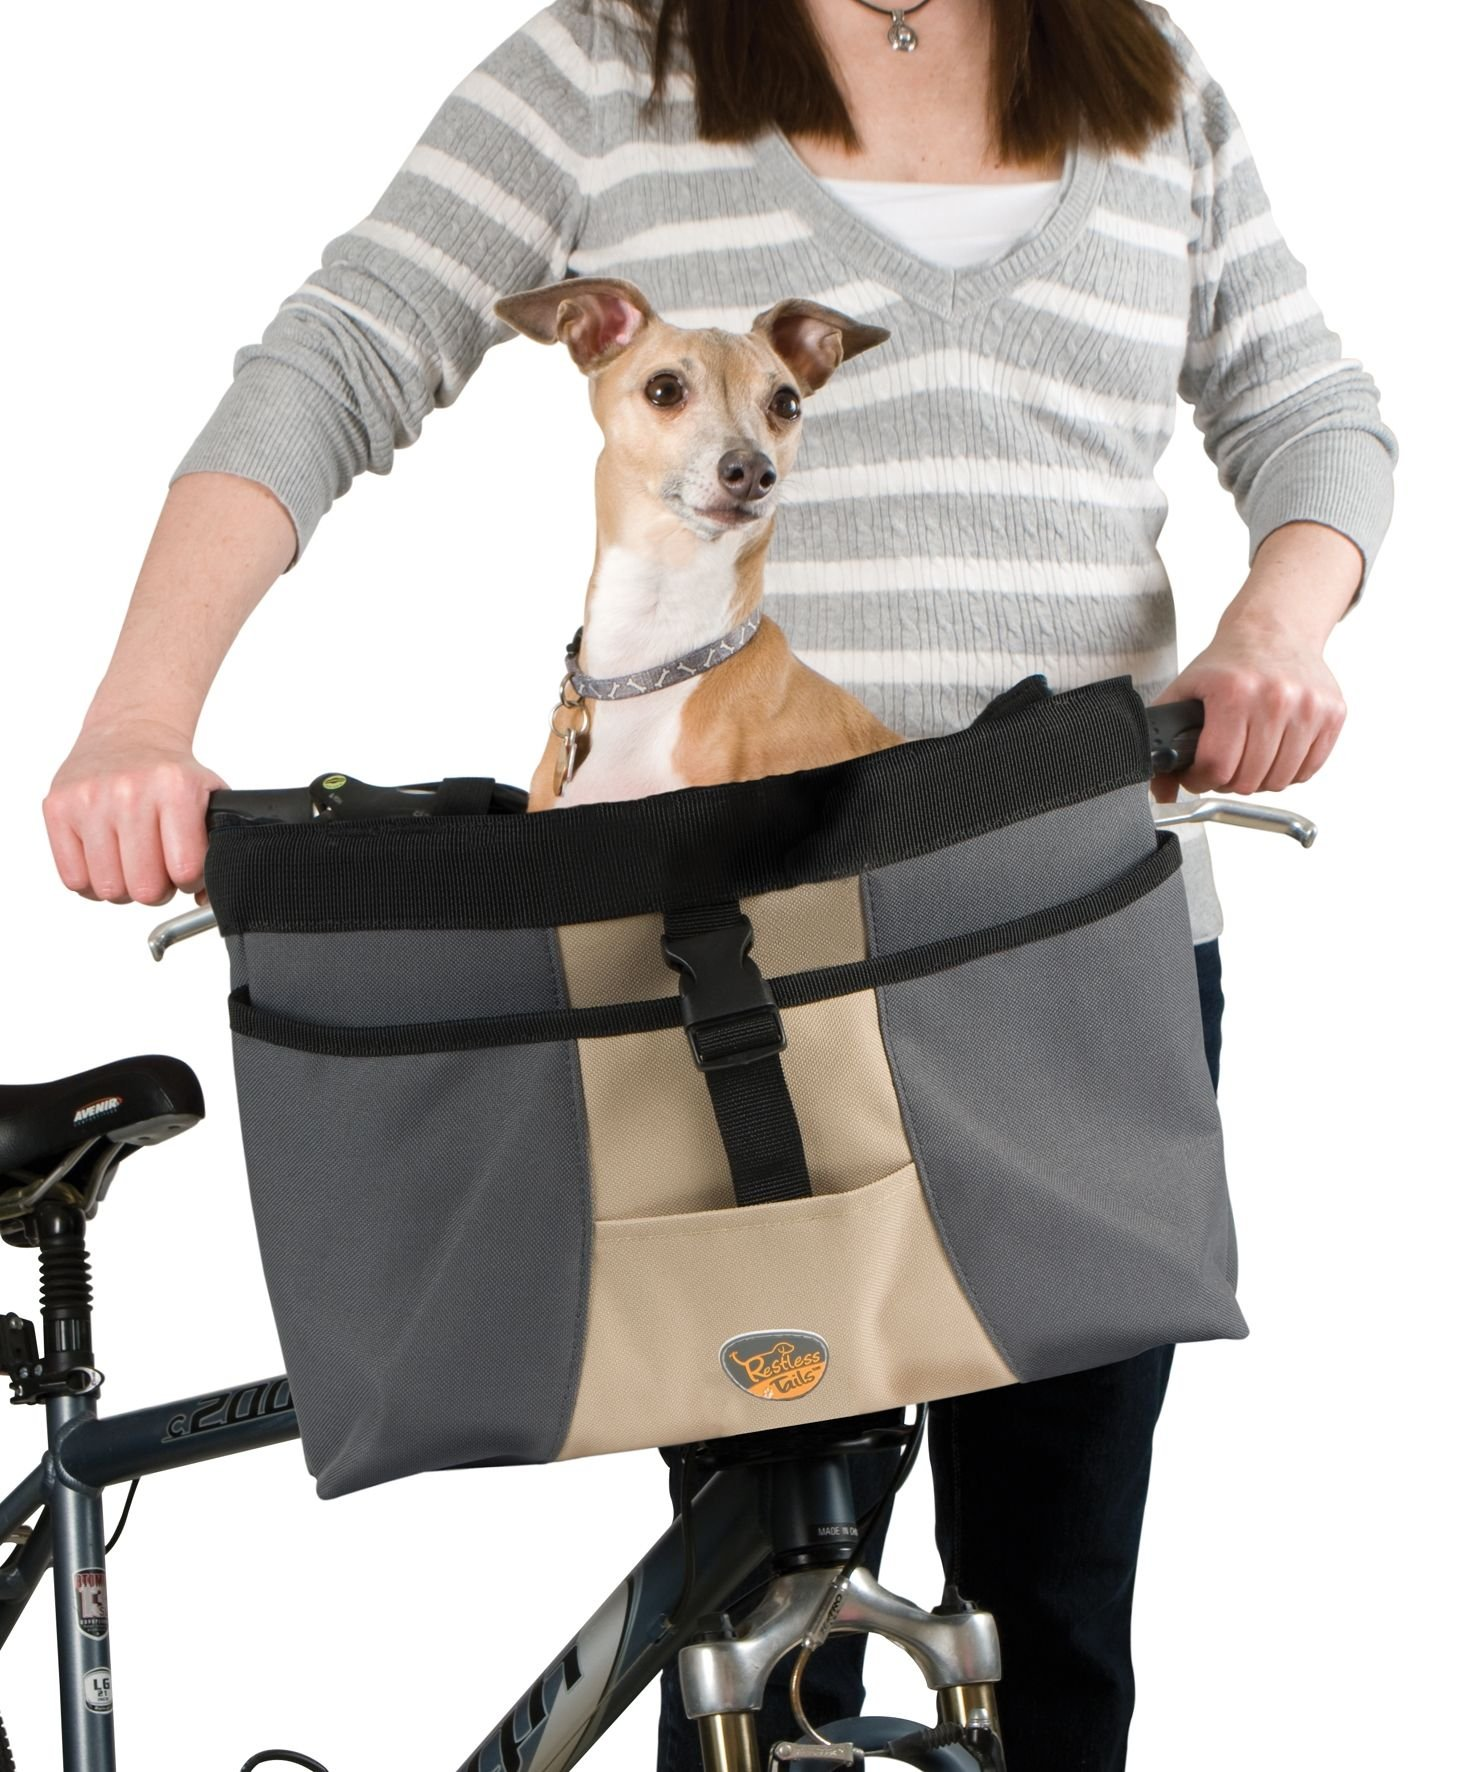 Restless Tails Front Bicycle Basket/Carrier for Pets by Restless Tails